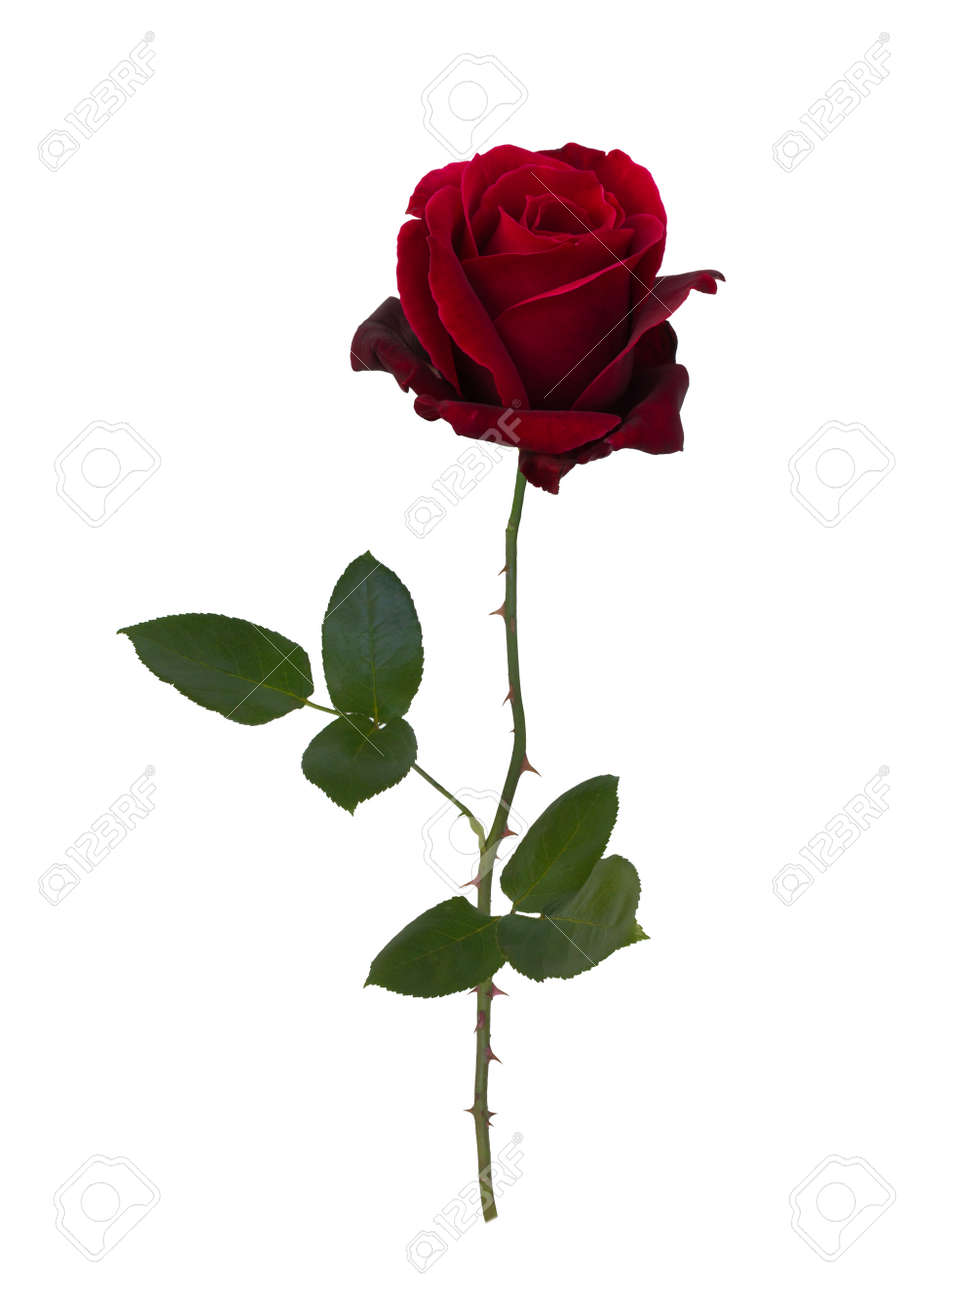 Dark red rose isolated on white background - 47912866